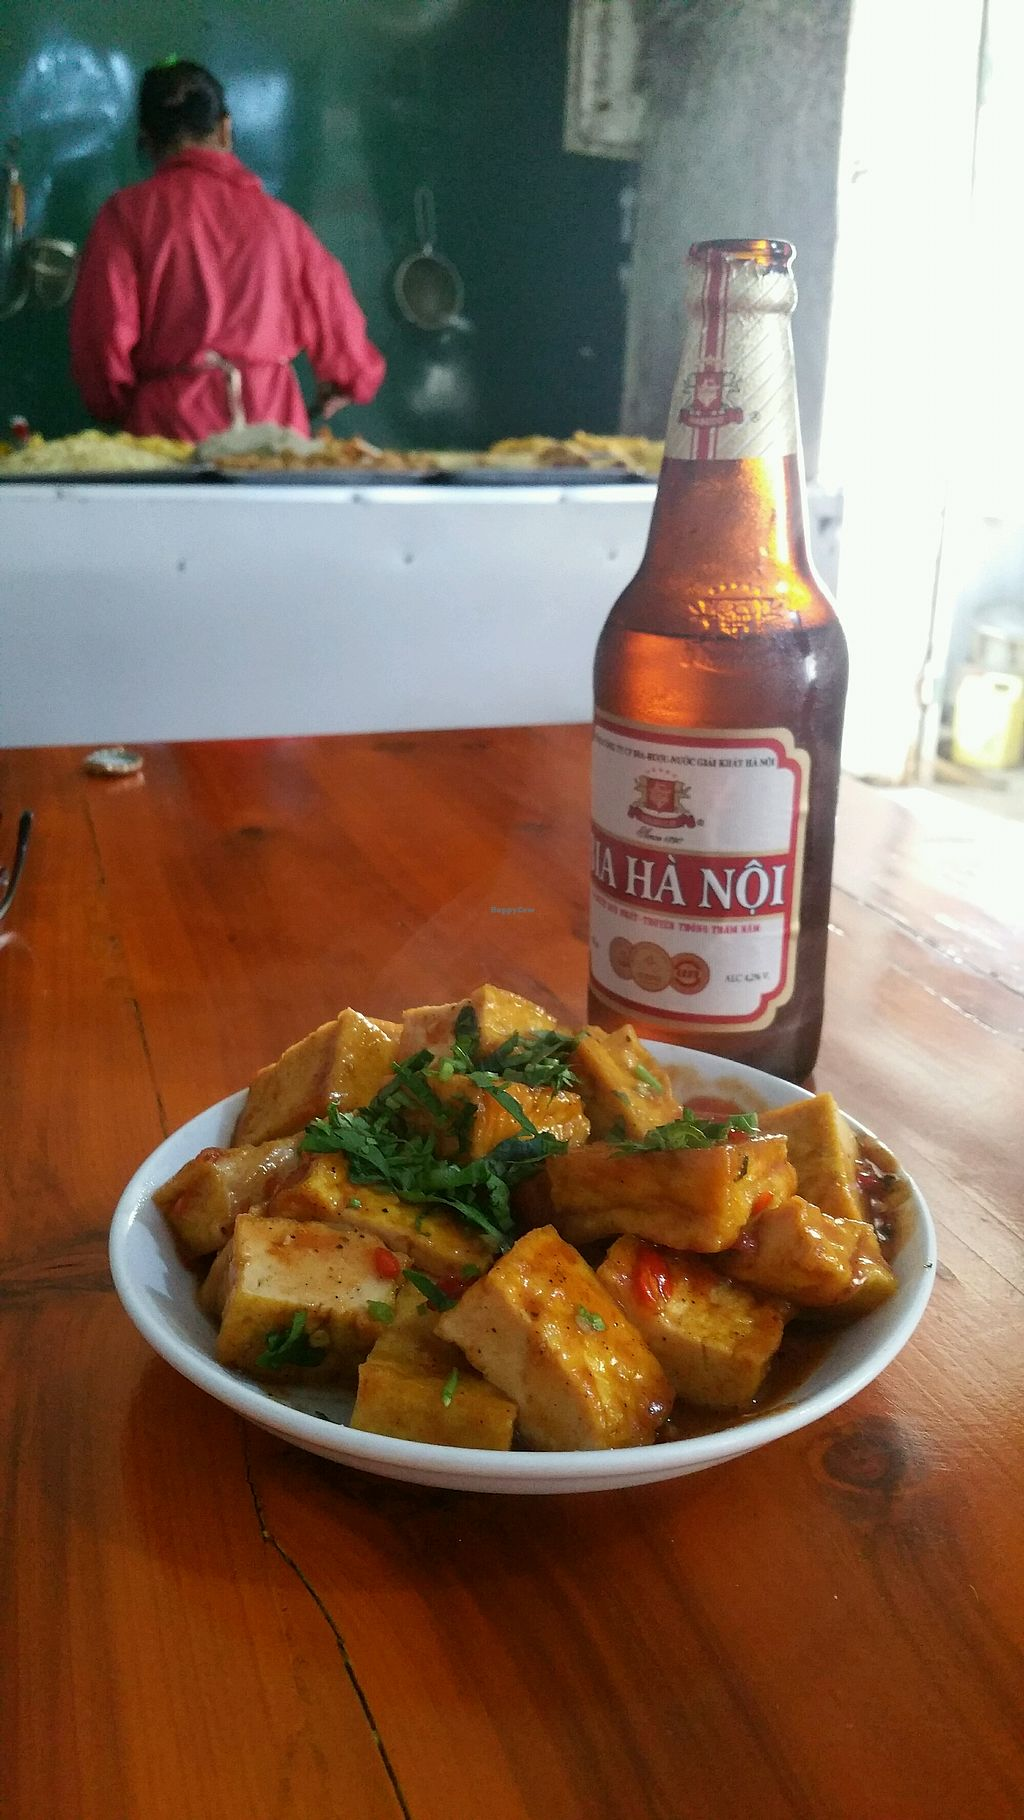 """Photo of Nha Hang Chay  by <a href=""""/members/profile/EranCohen"""">EranCohen</a> <br/>Tofu coated w tomato sauce <br/> April 22, 2018  - <a href='/contact/abuse/image/108153/389279'>Report</a>"""